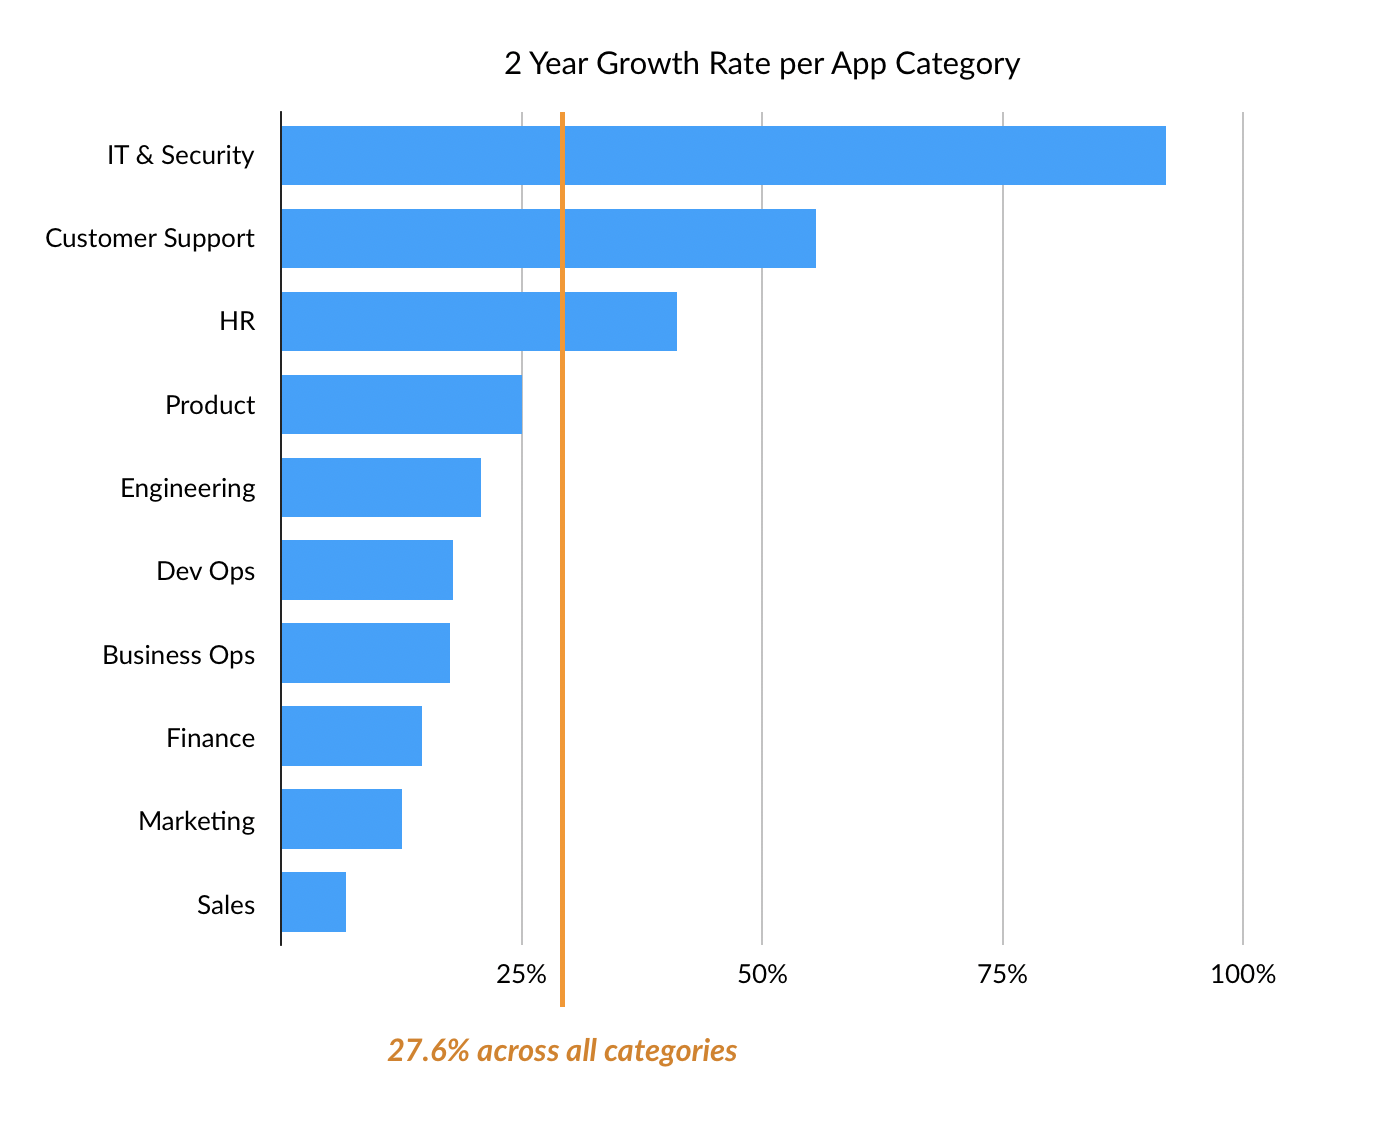 2 Year Growth Rate per App Category